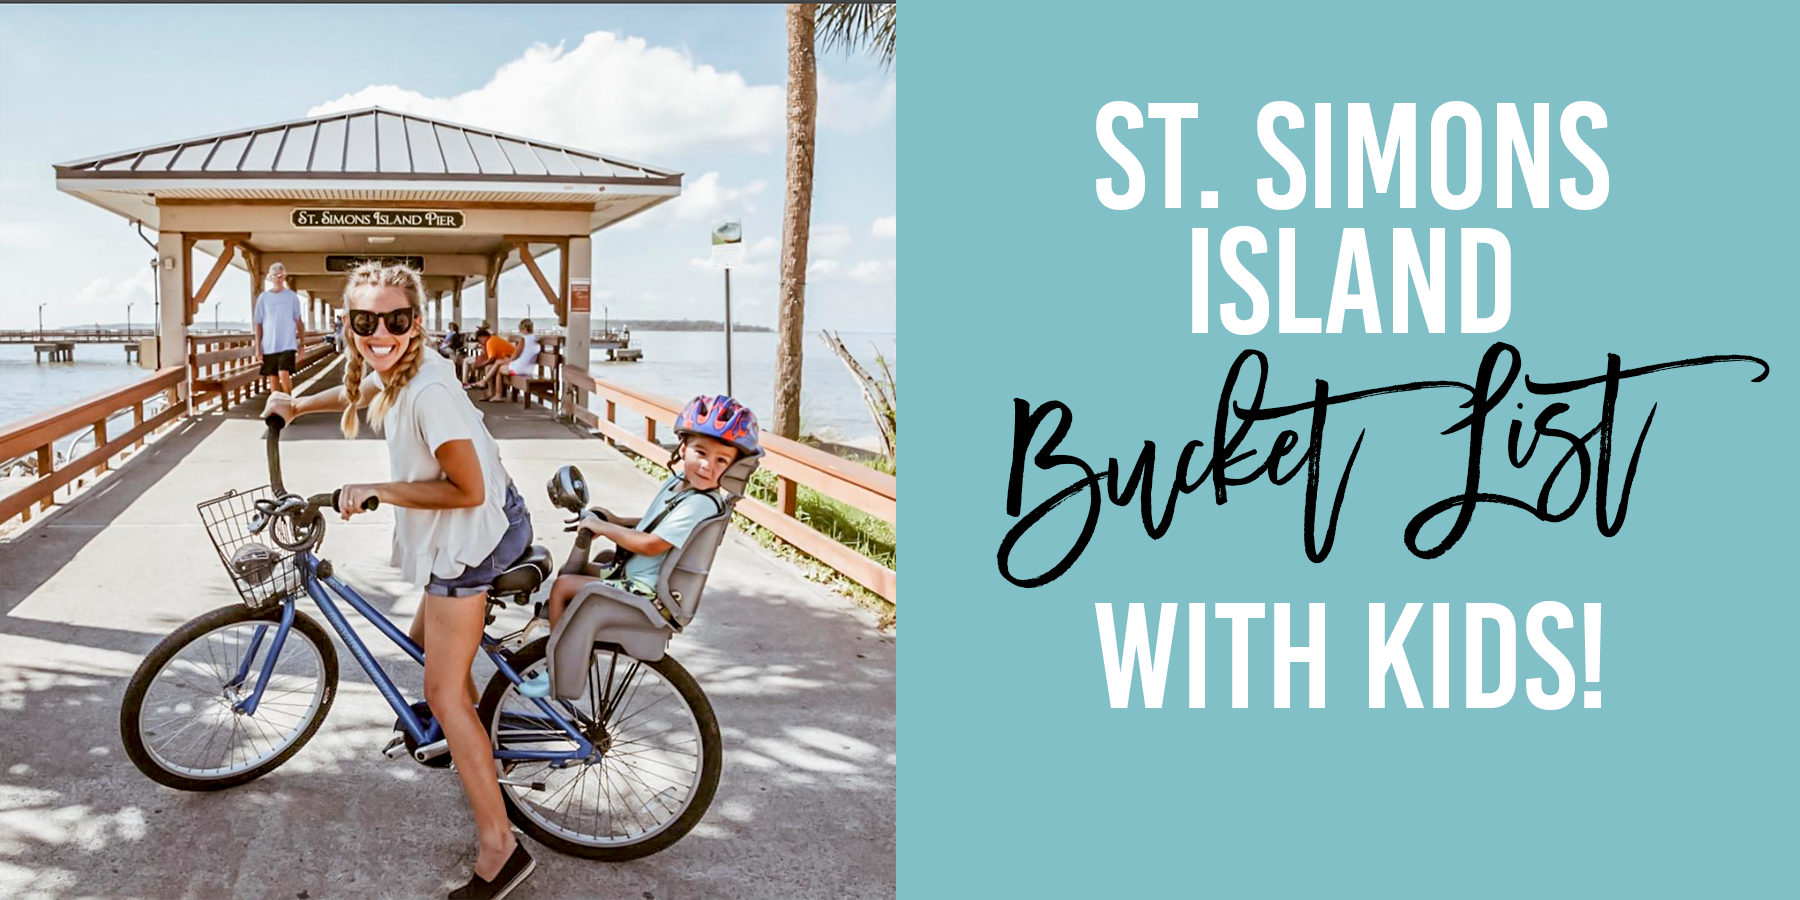 St. Simons bucket list!! Visit St. Simons Island with Kids! Give your kids the vacation of a lifetime on St. Simons Island! #stsimons #kingandprinceresort #stsimonsbucketlist #familytravel #travelwithkids #familybucketlist